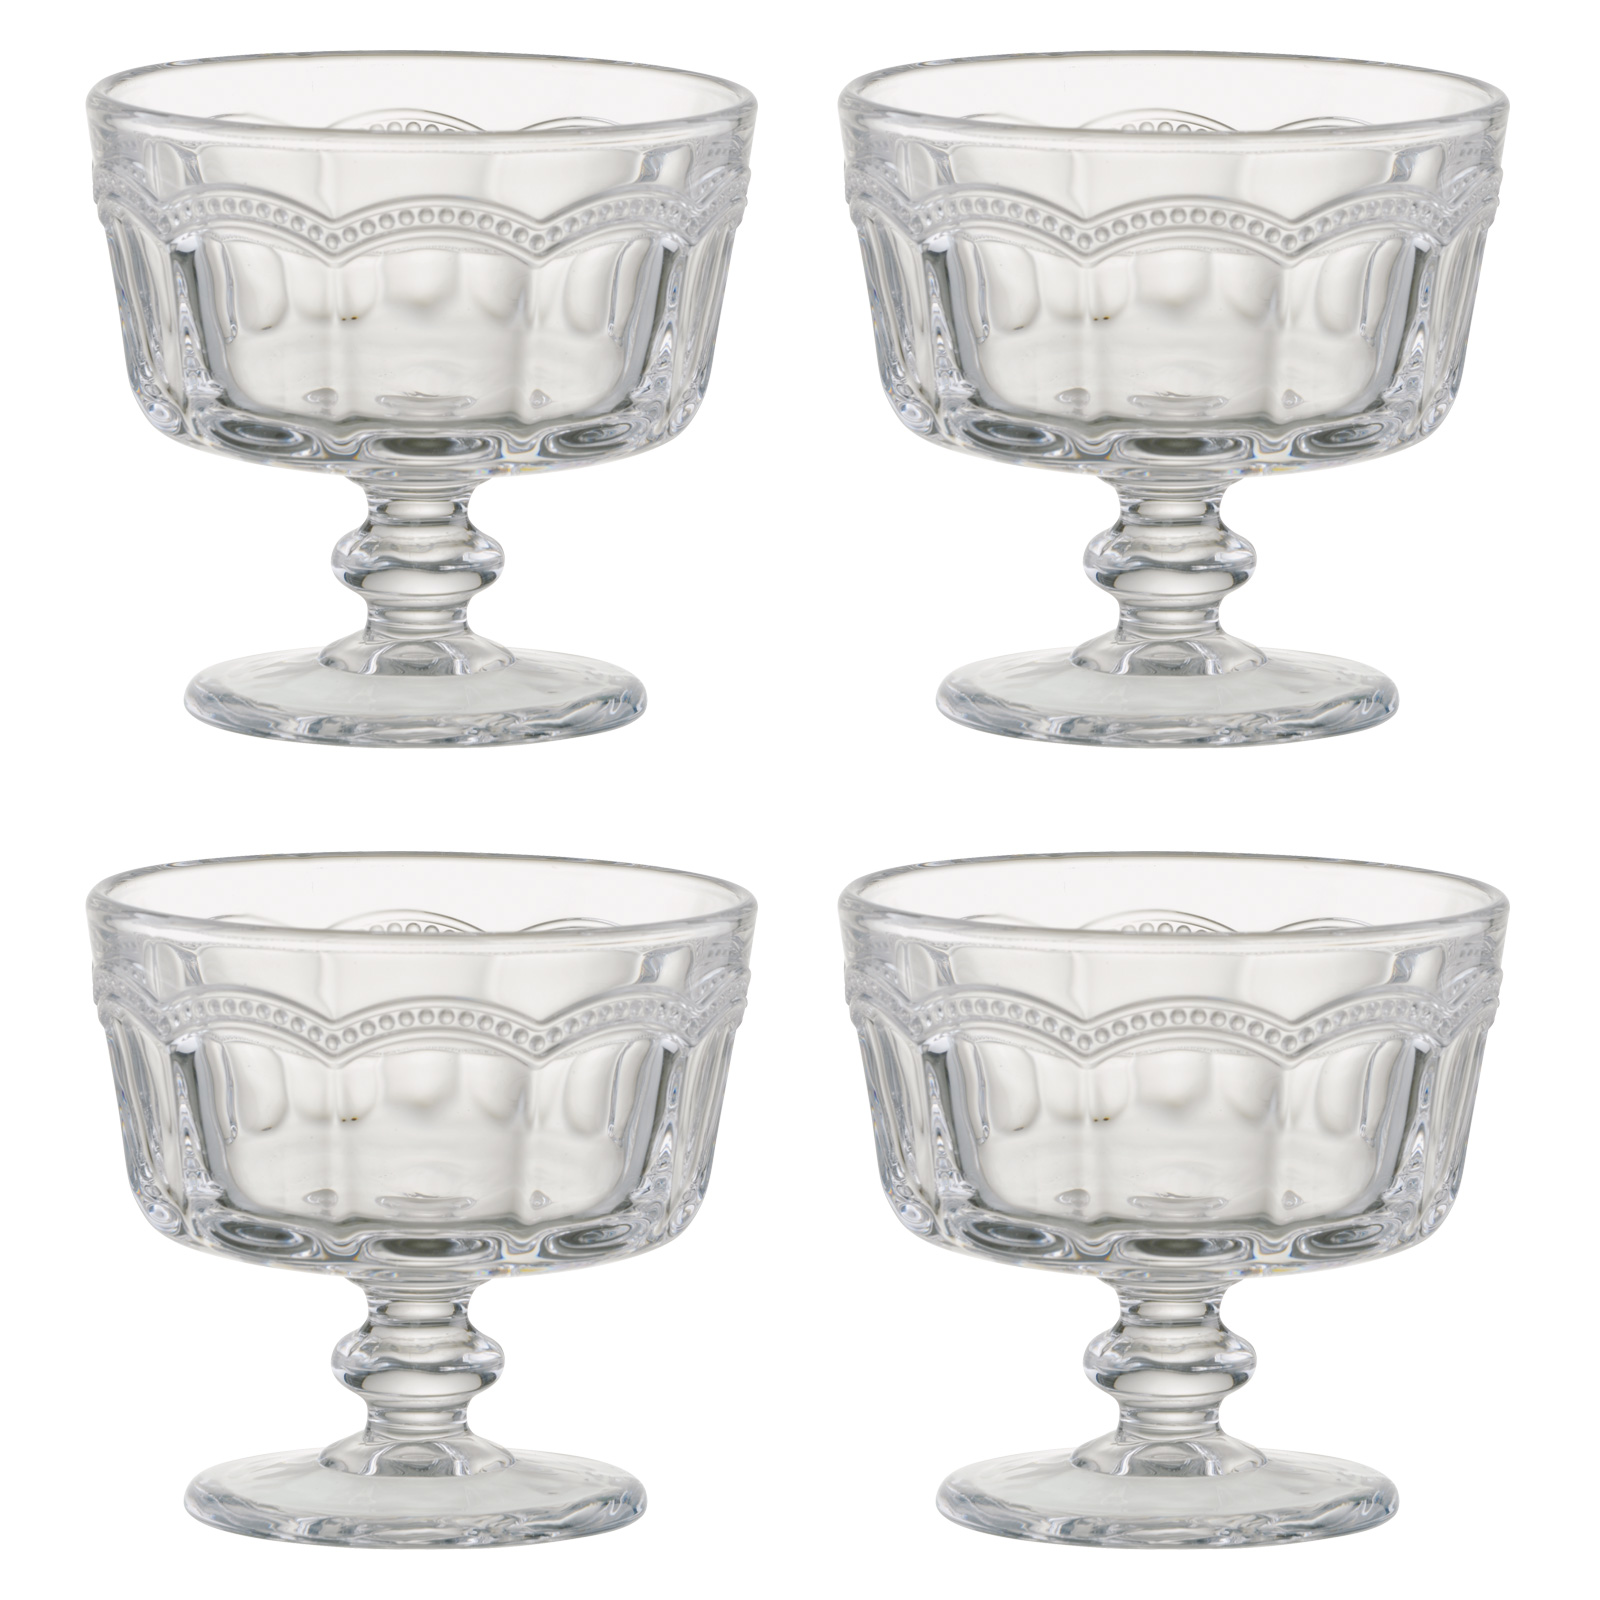 Set of 4 Pearl Ridge Mini Trifle Bowls by Artland